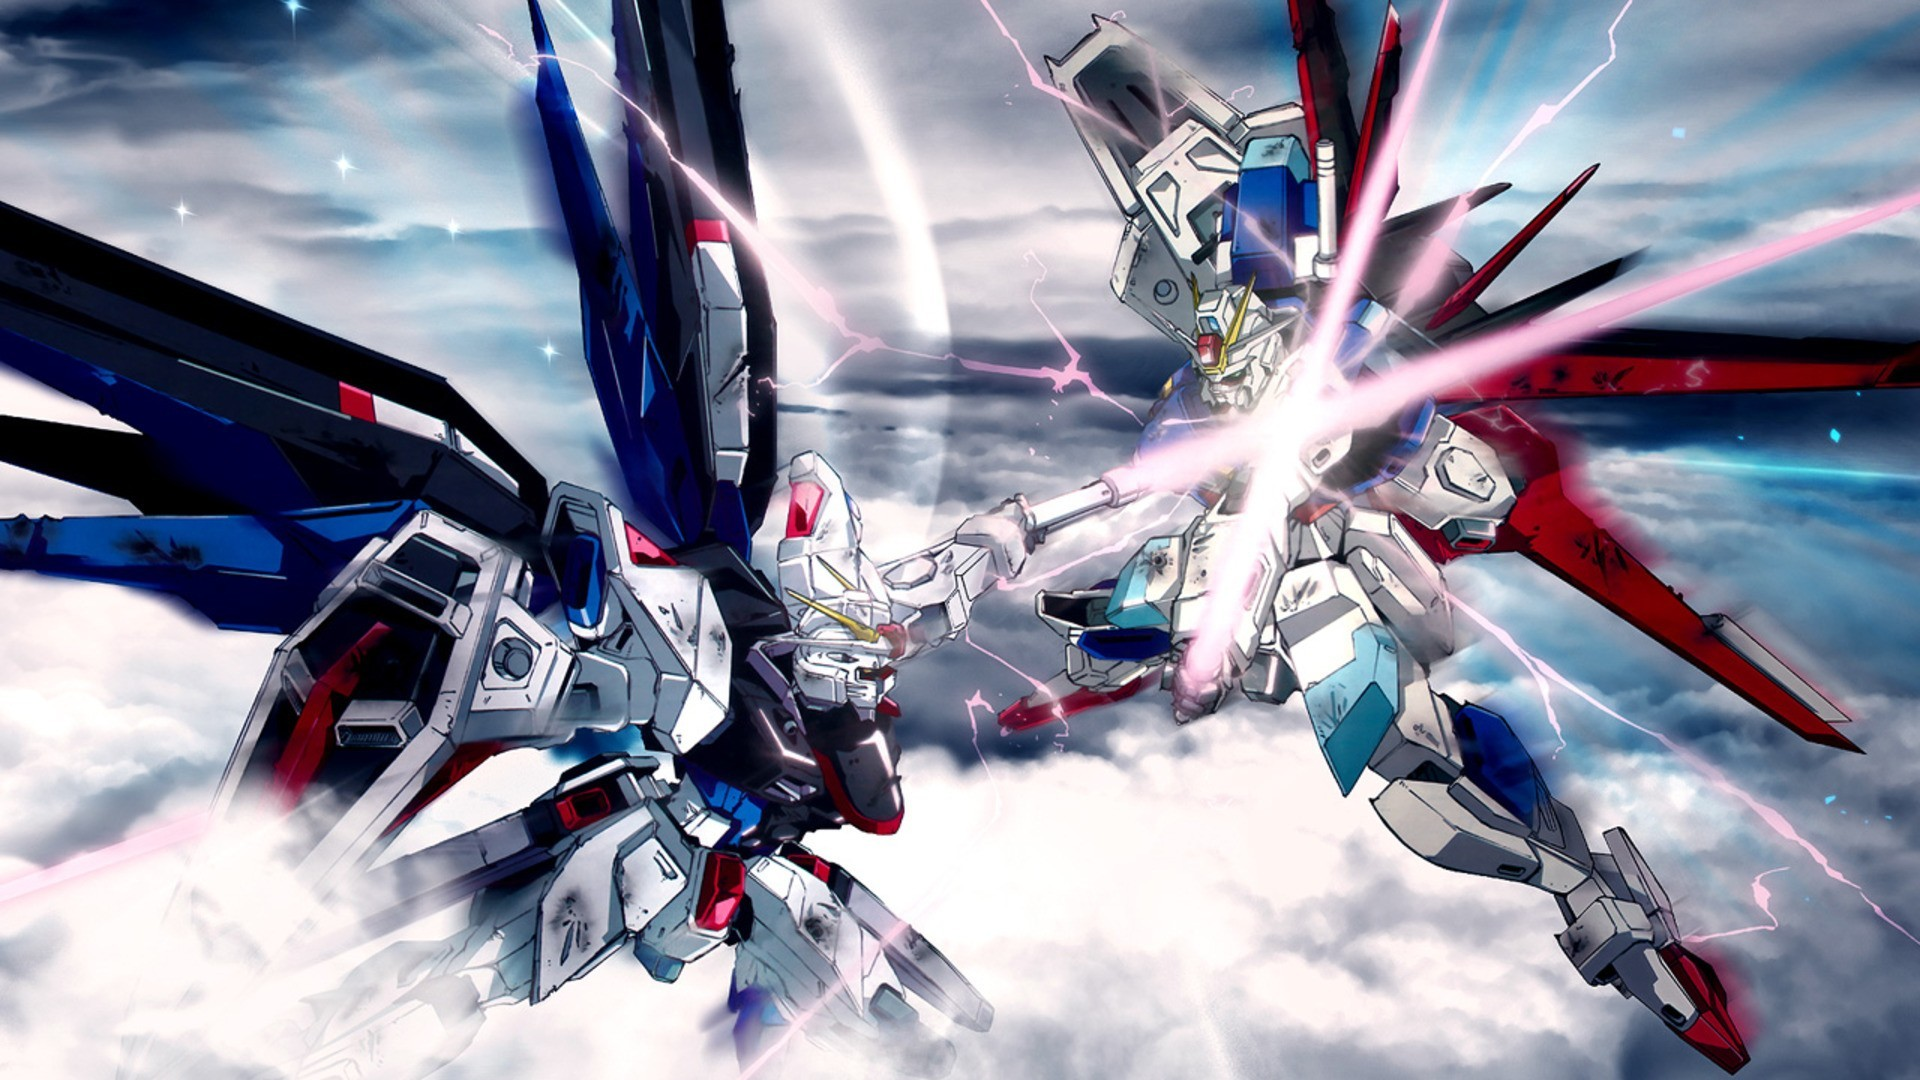 Mobile Suit Gundam Wallpaper 1366x768 Download Mobile Suit Gundam 1920x1080